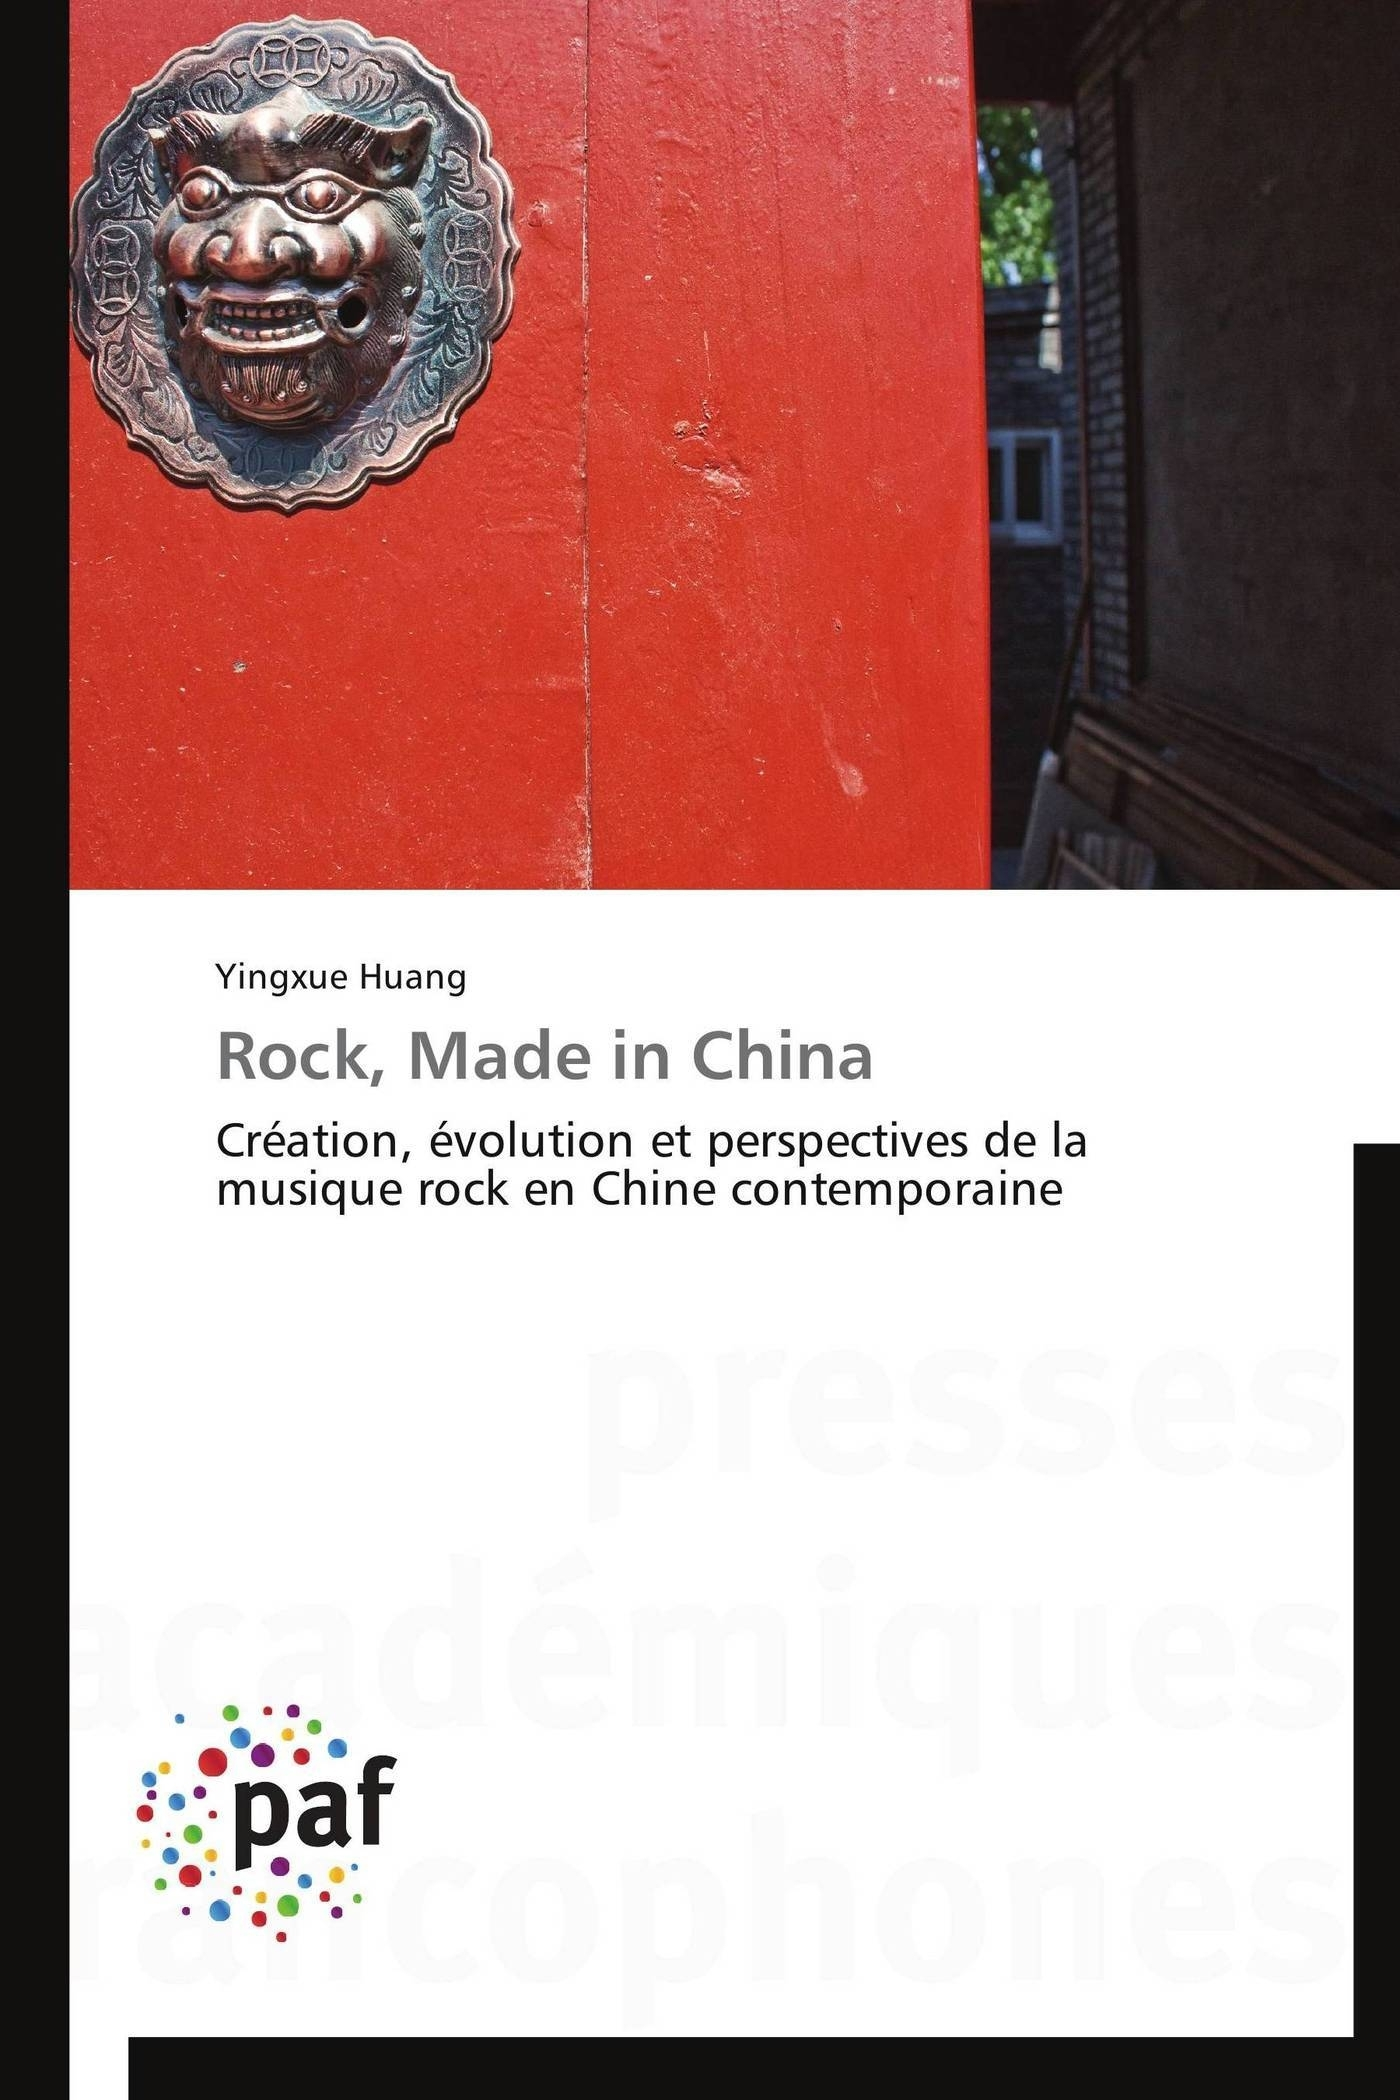 ROCK, MADE IN CHINA